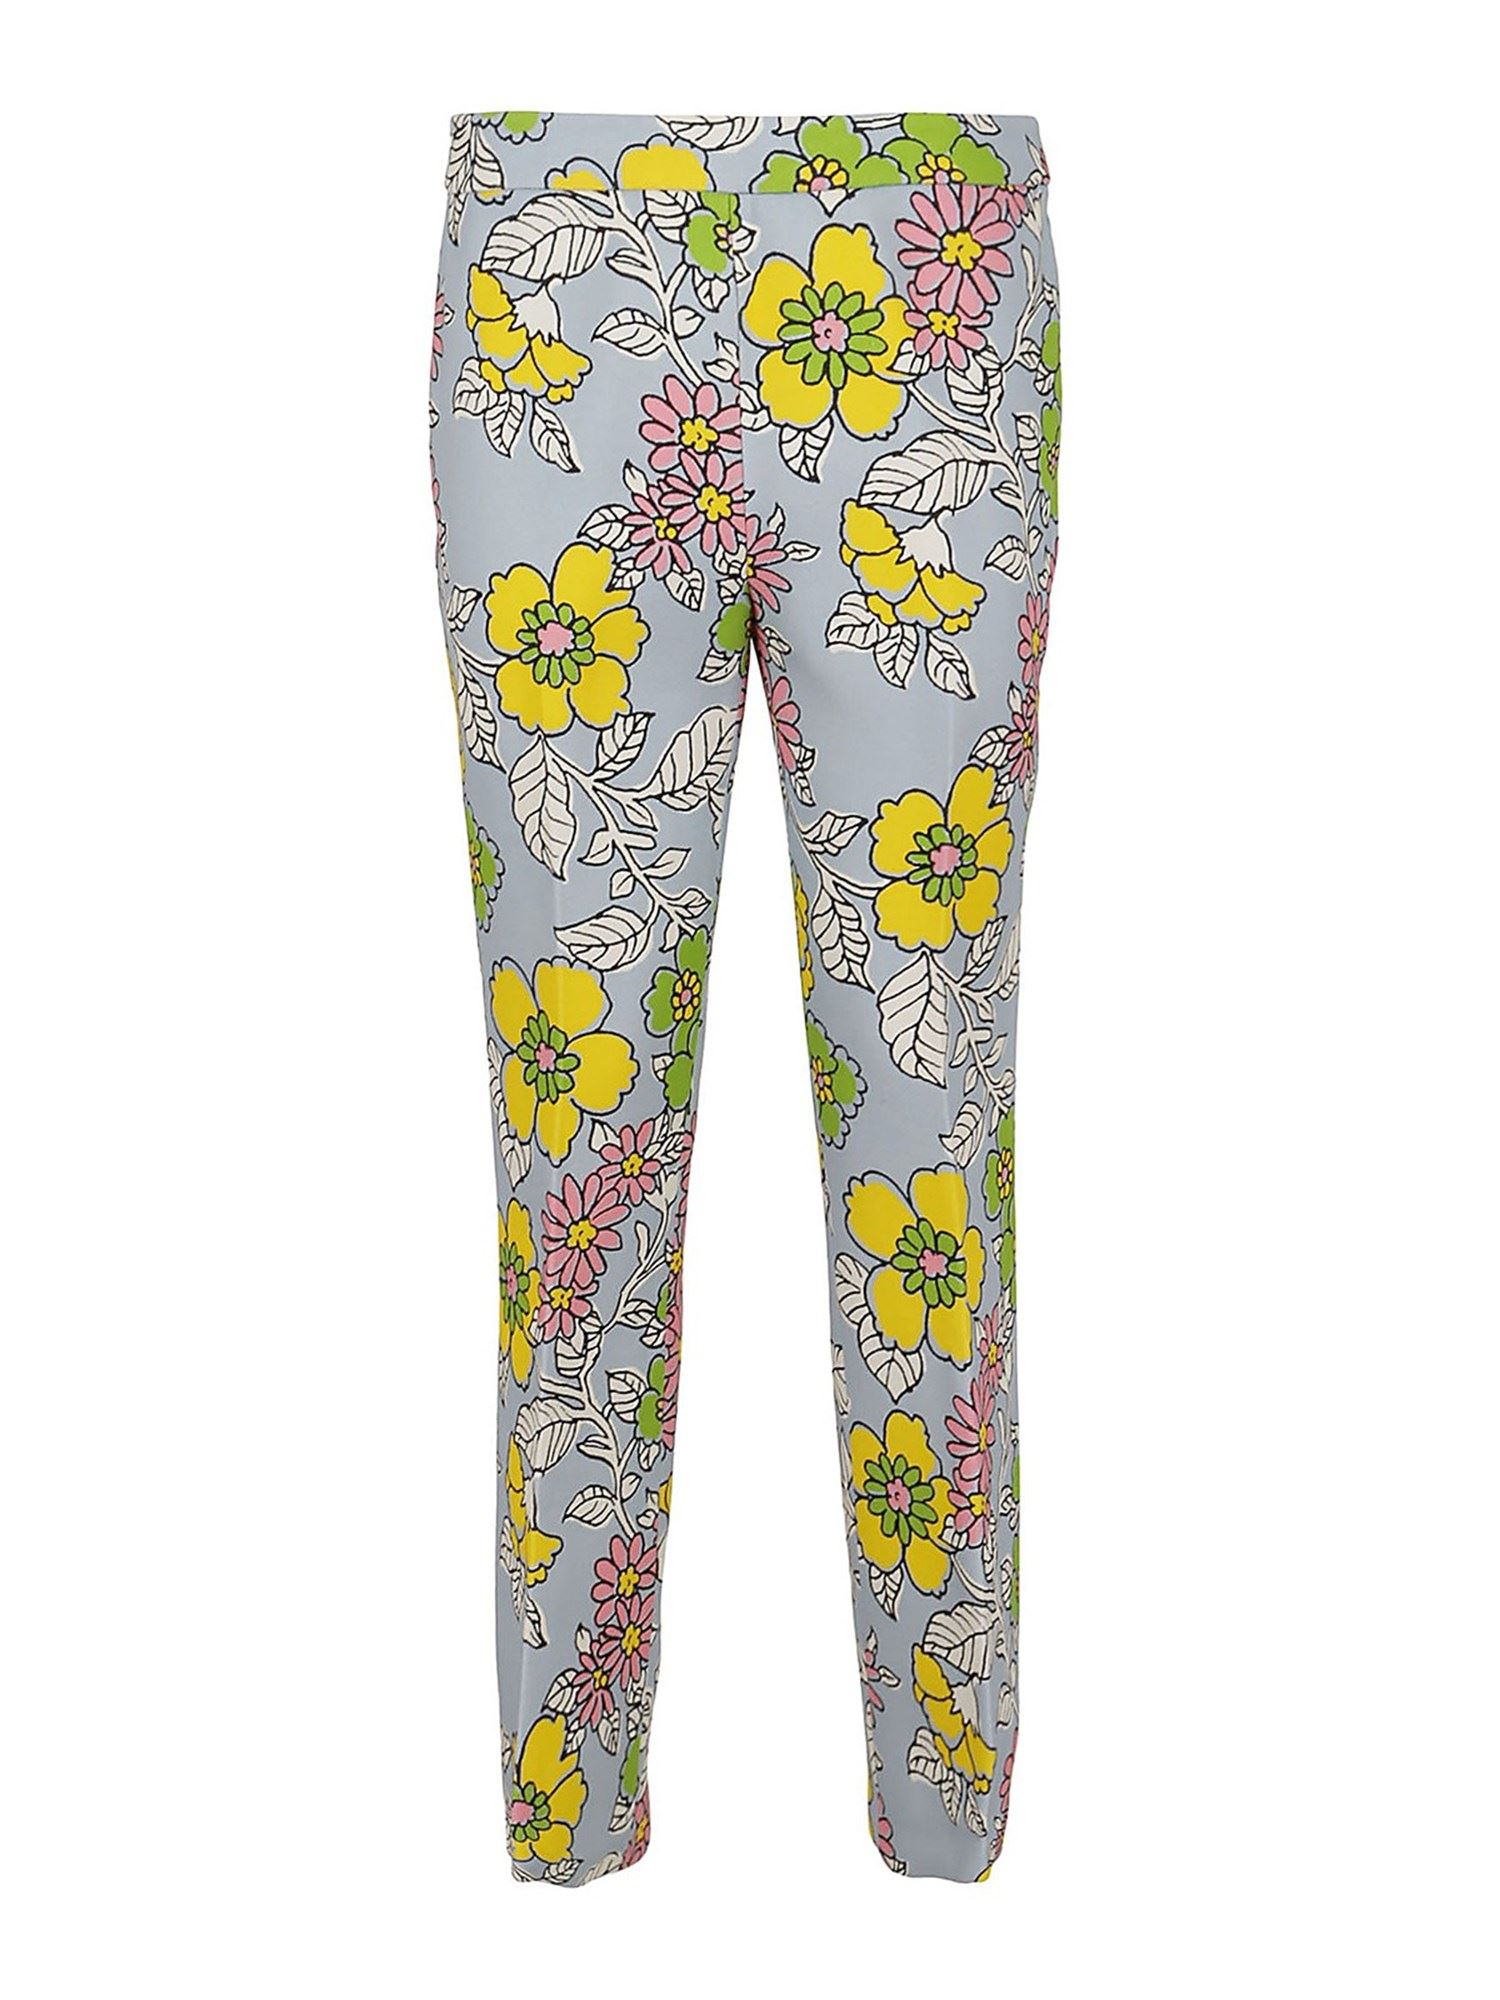 Tory Burch FLORAL PRINTED MULTICOLOR PANTS